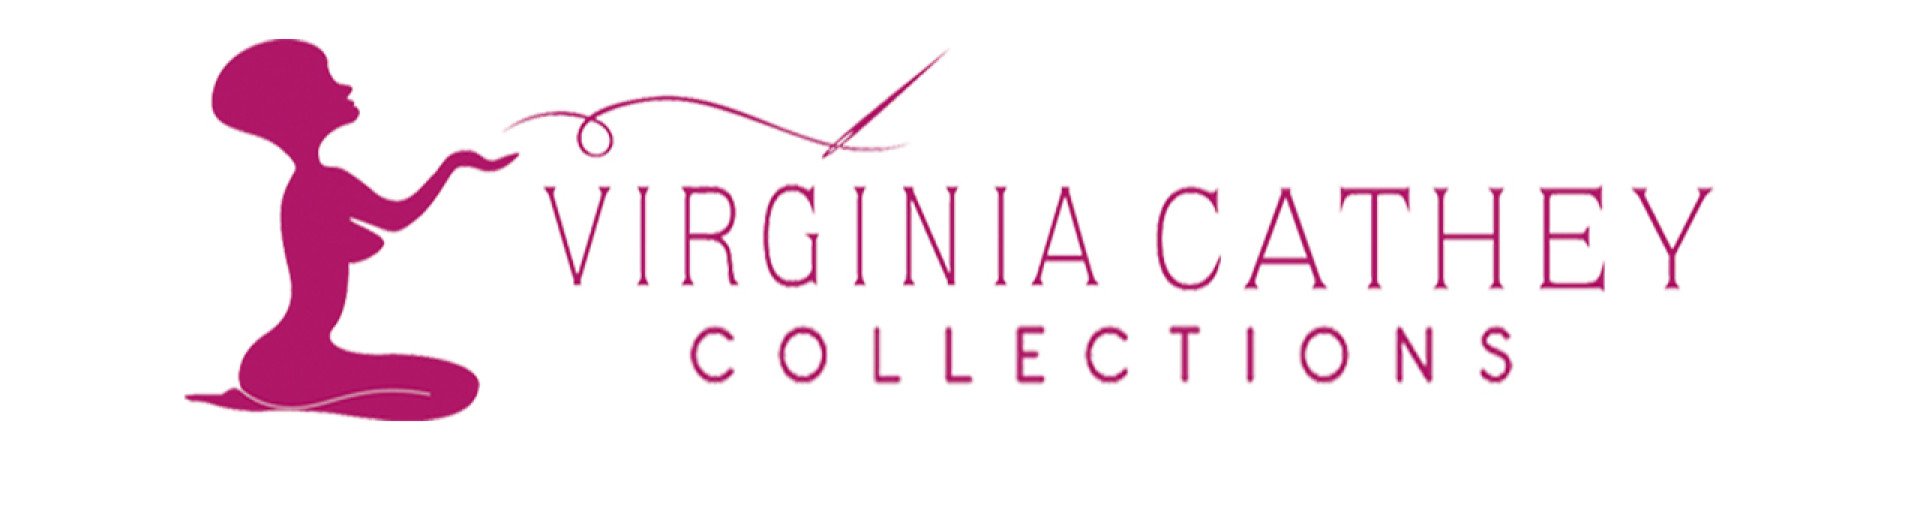 Virginia Cathey Collections